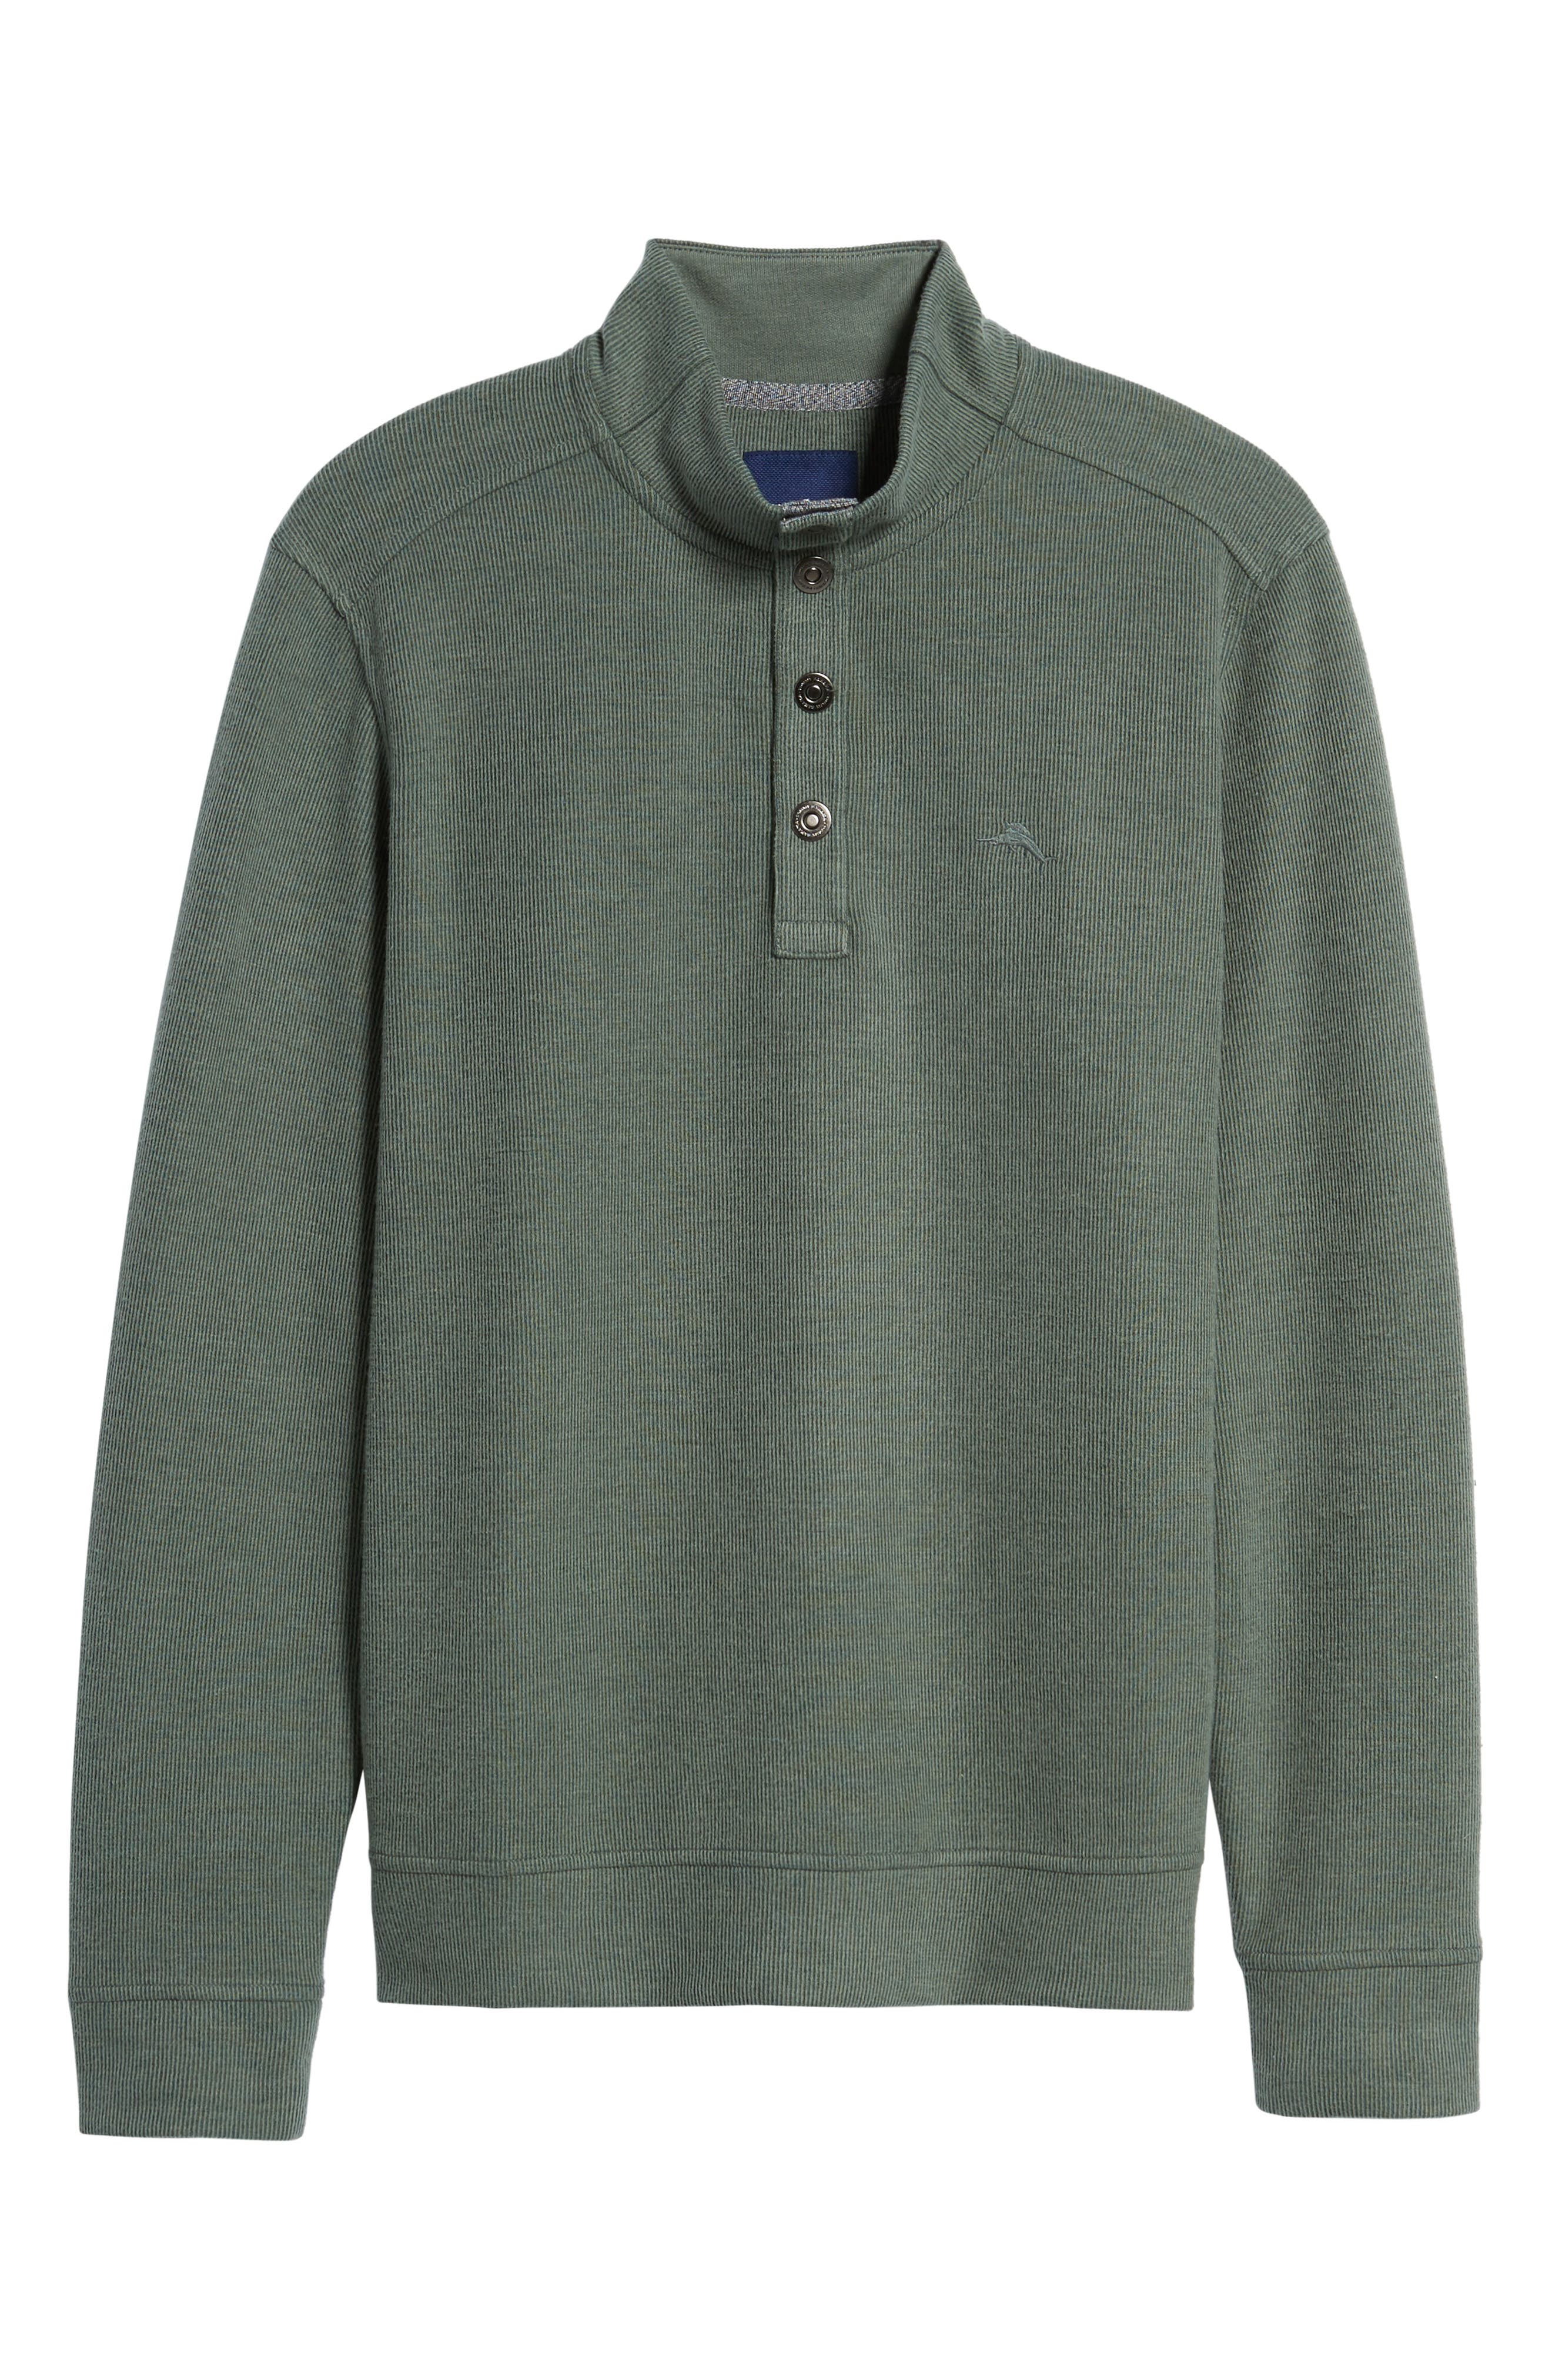 Cold Springs Snap Mock Neck Sweater,                             Alternate thumbnail 34, color,